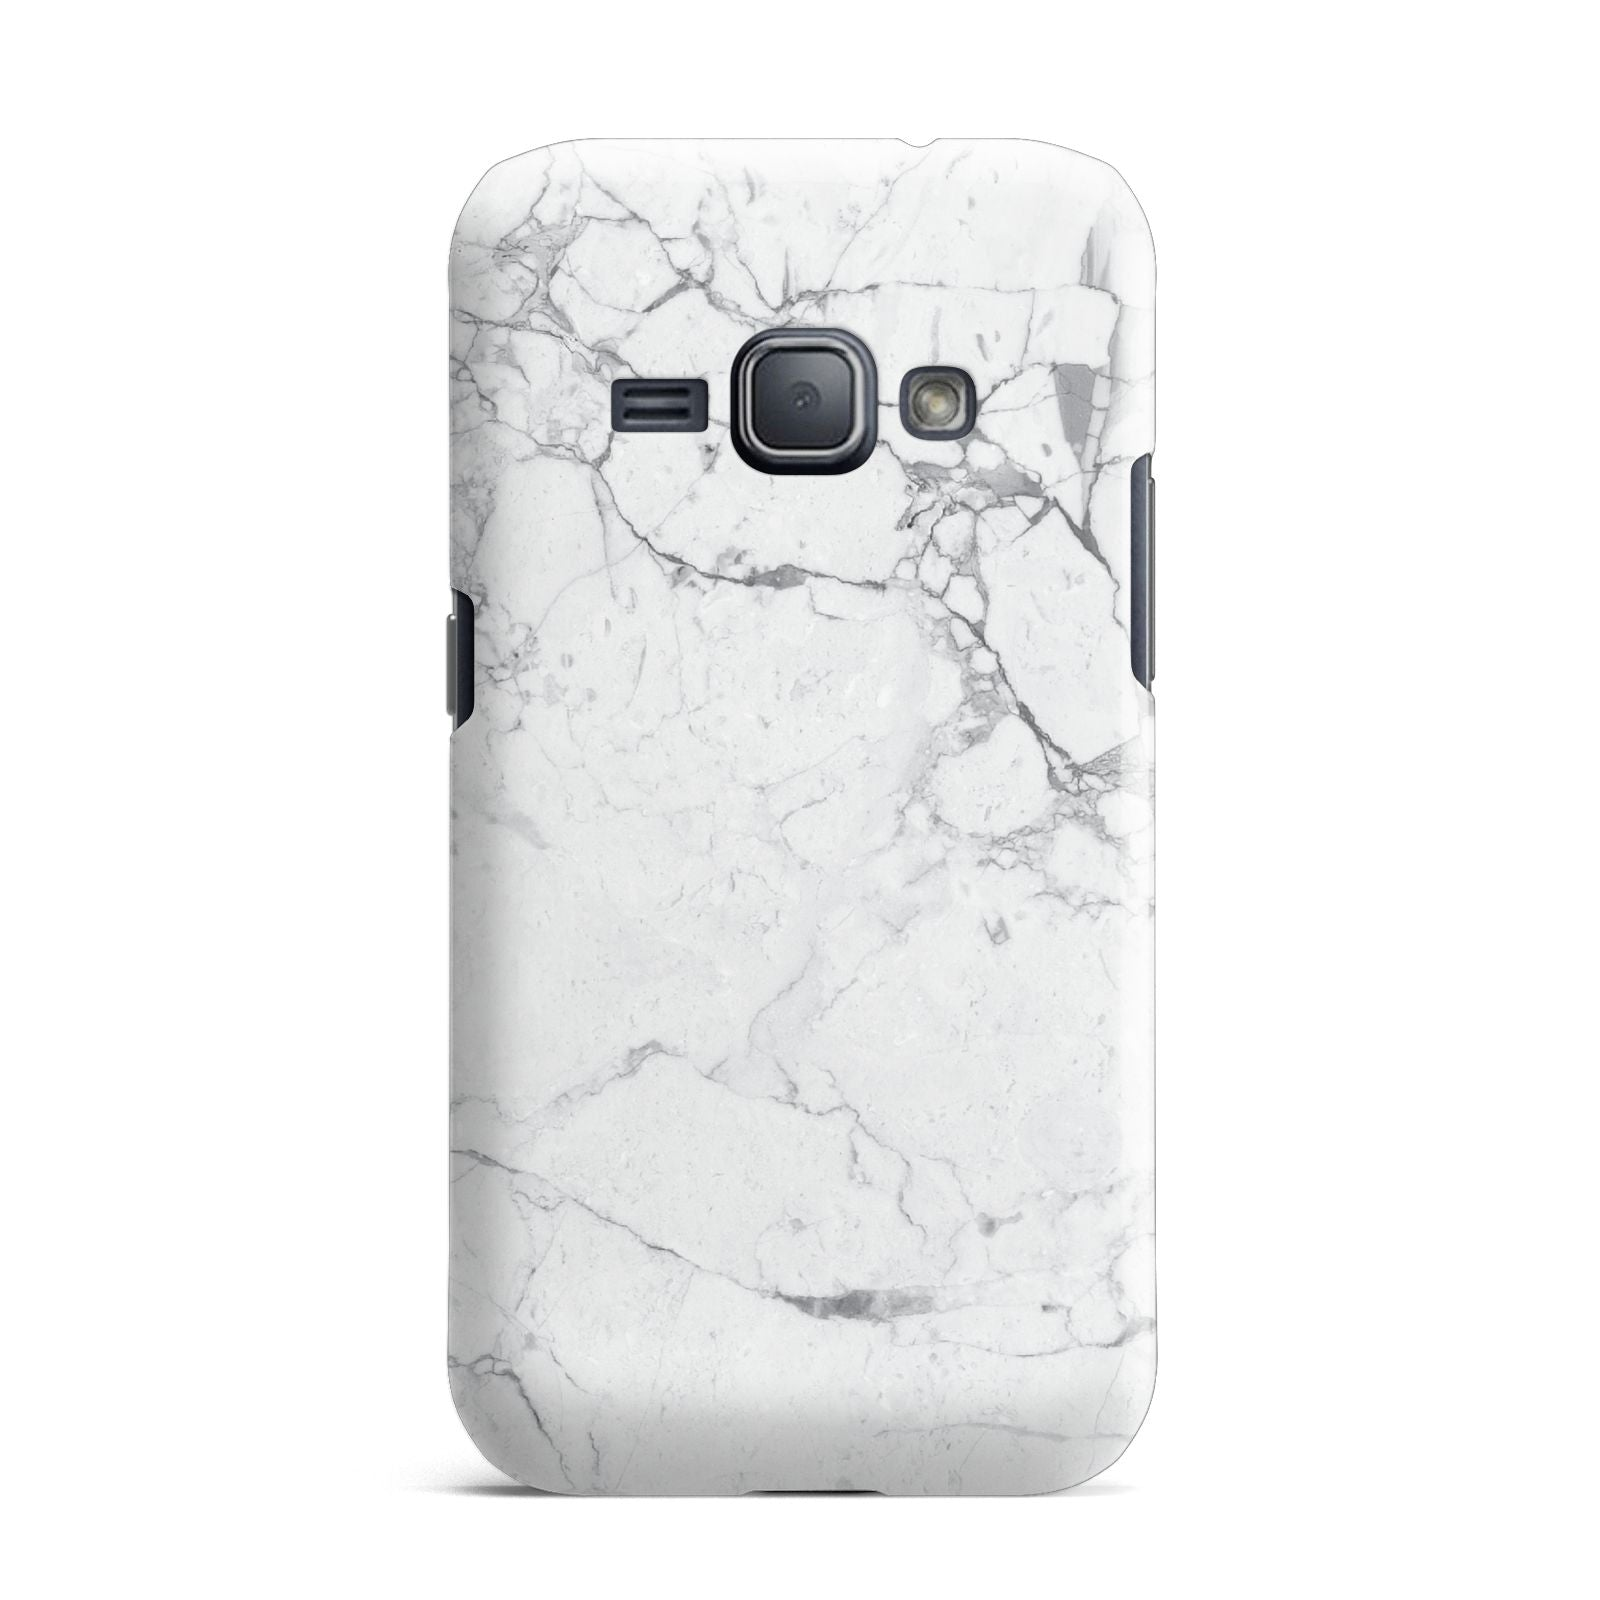 Faux Marble Effect Grey White Samsung Galaxy J1 2016 Case